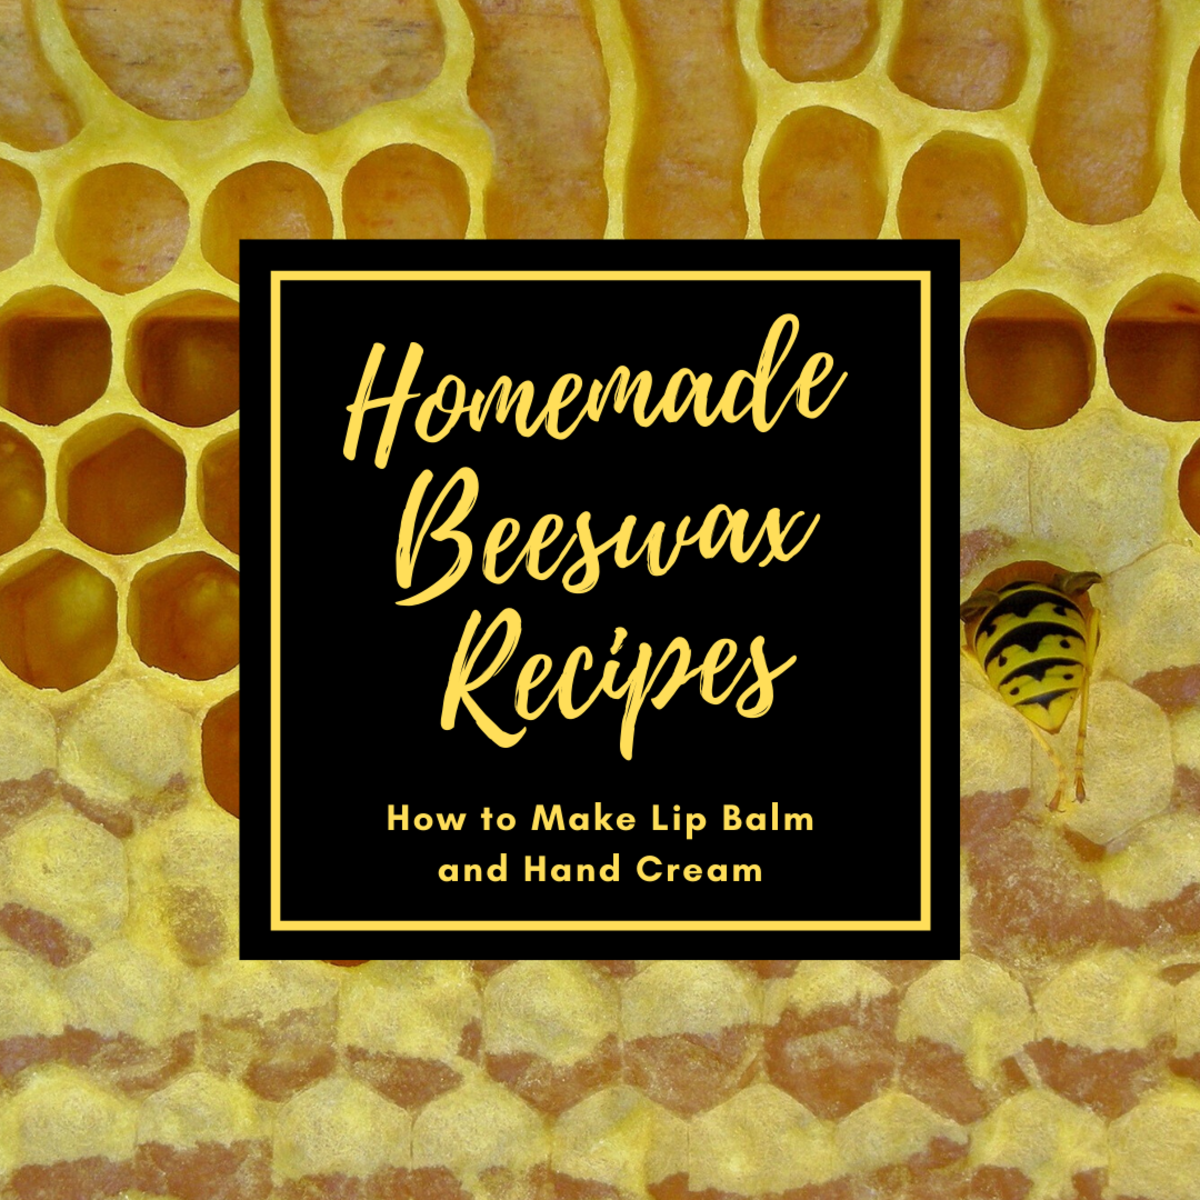 This article will explain some of the benefits of making skin care products from beeswax and provide recipes for making your own lip balm and hand cream.